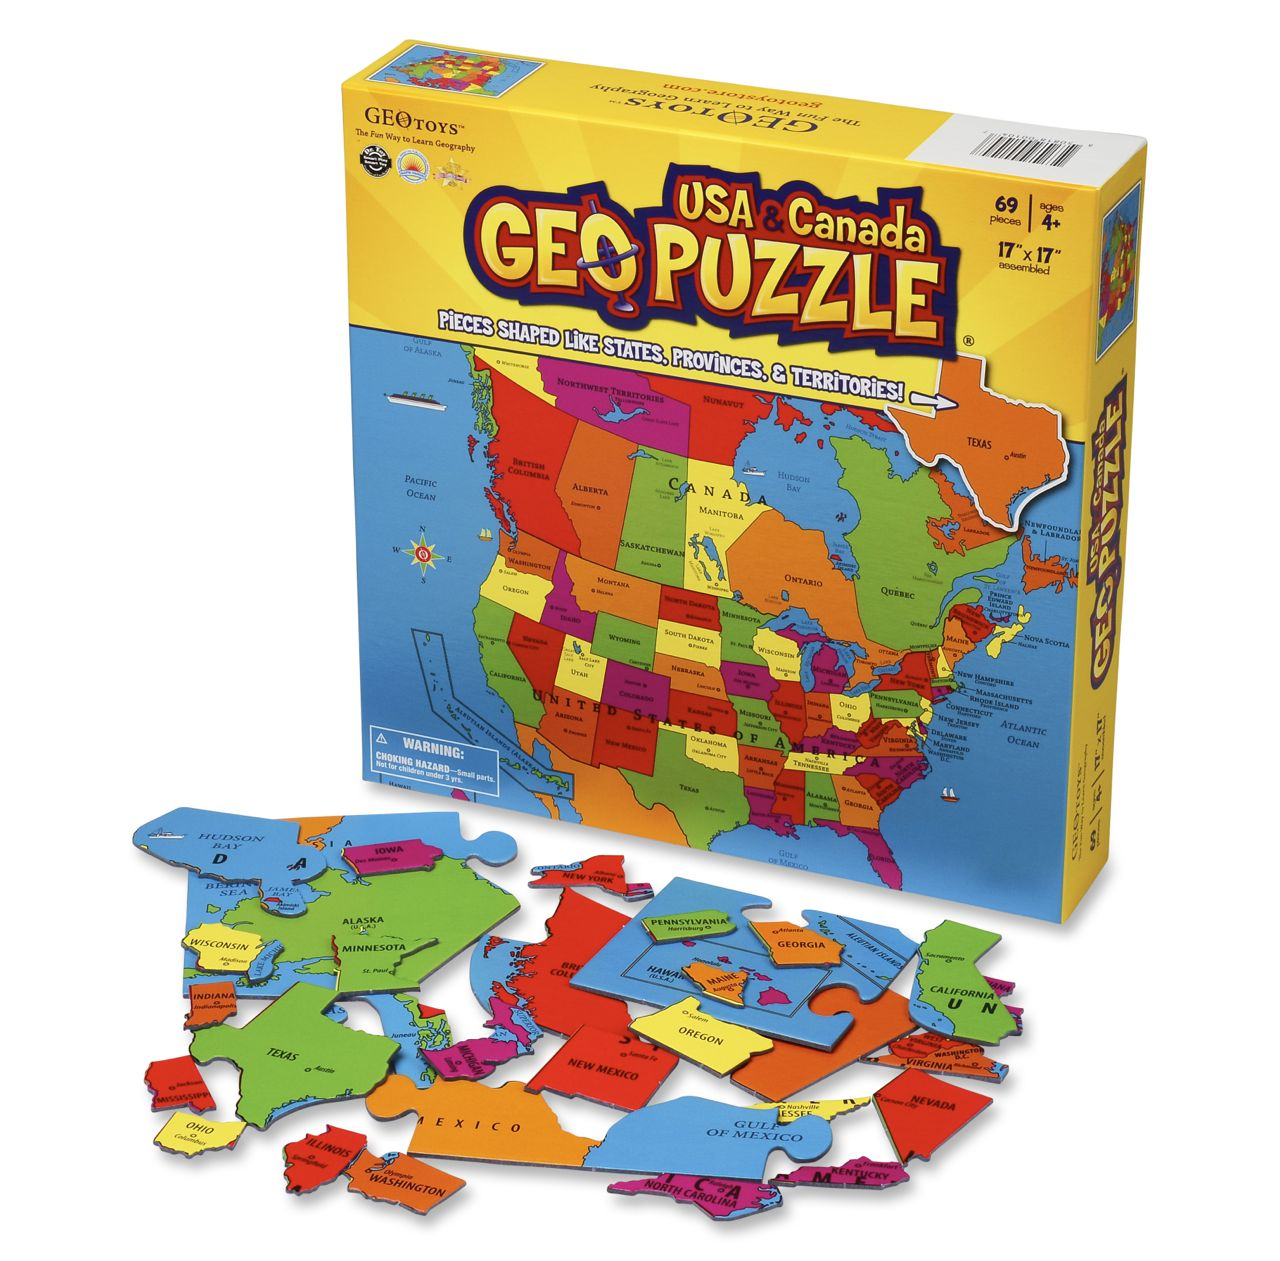 Legpuzzel Geopuzzle U.S.A. and Canada - Verenigde Staten en Canada   Geotoys